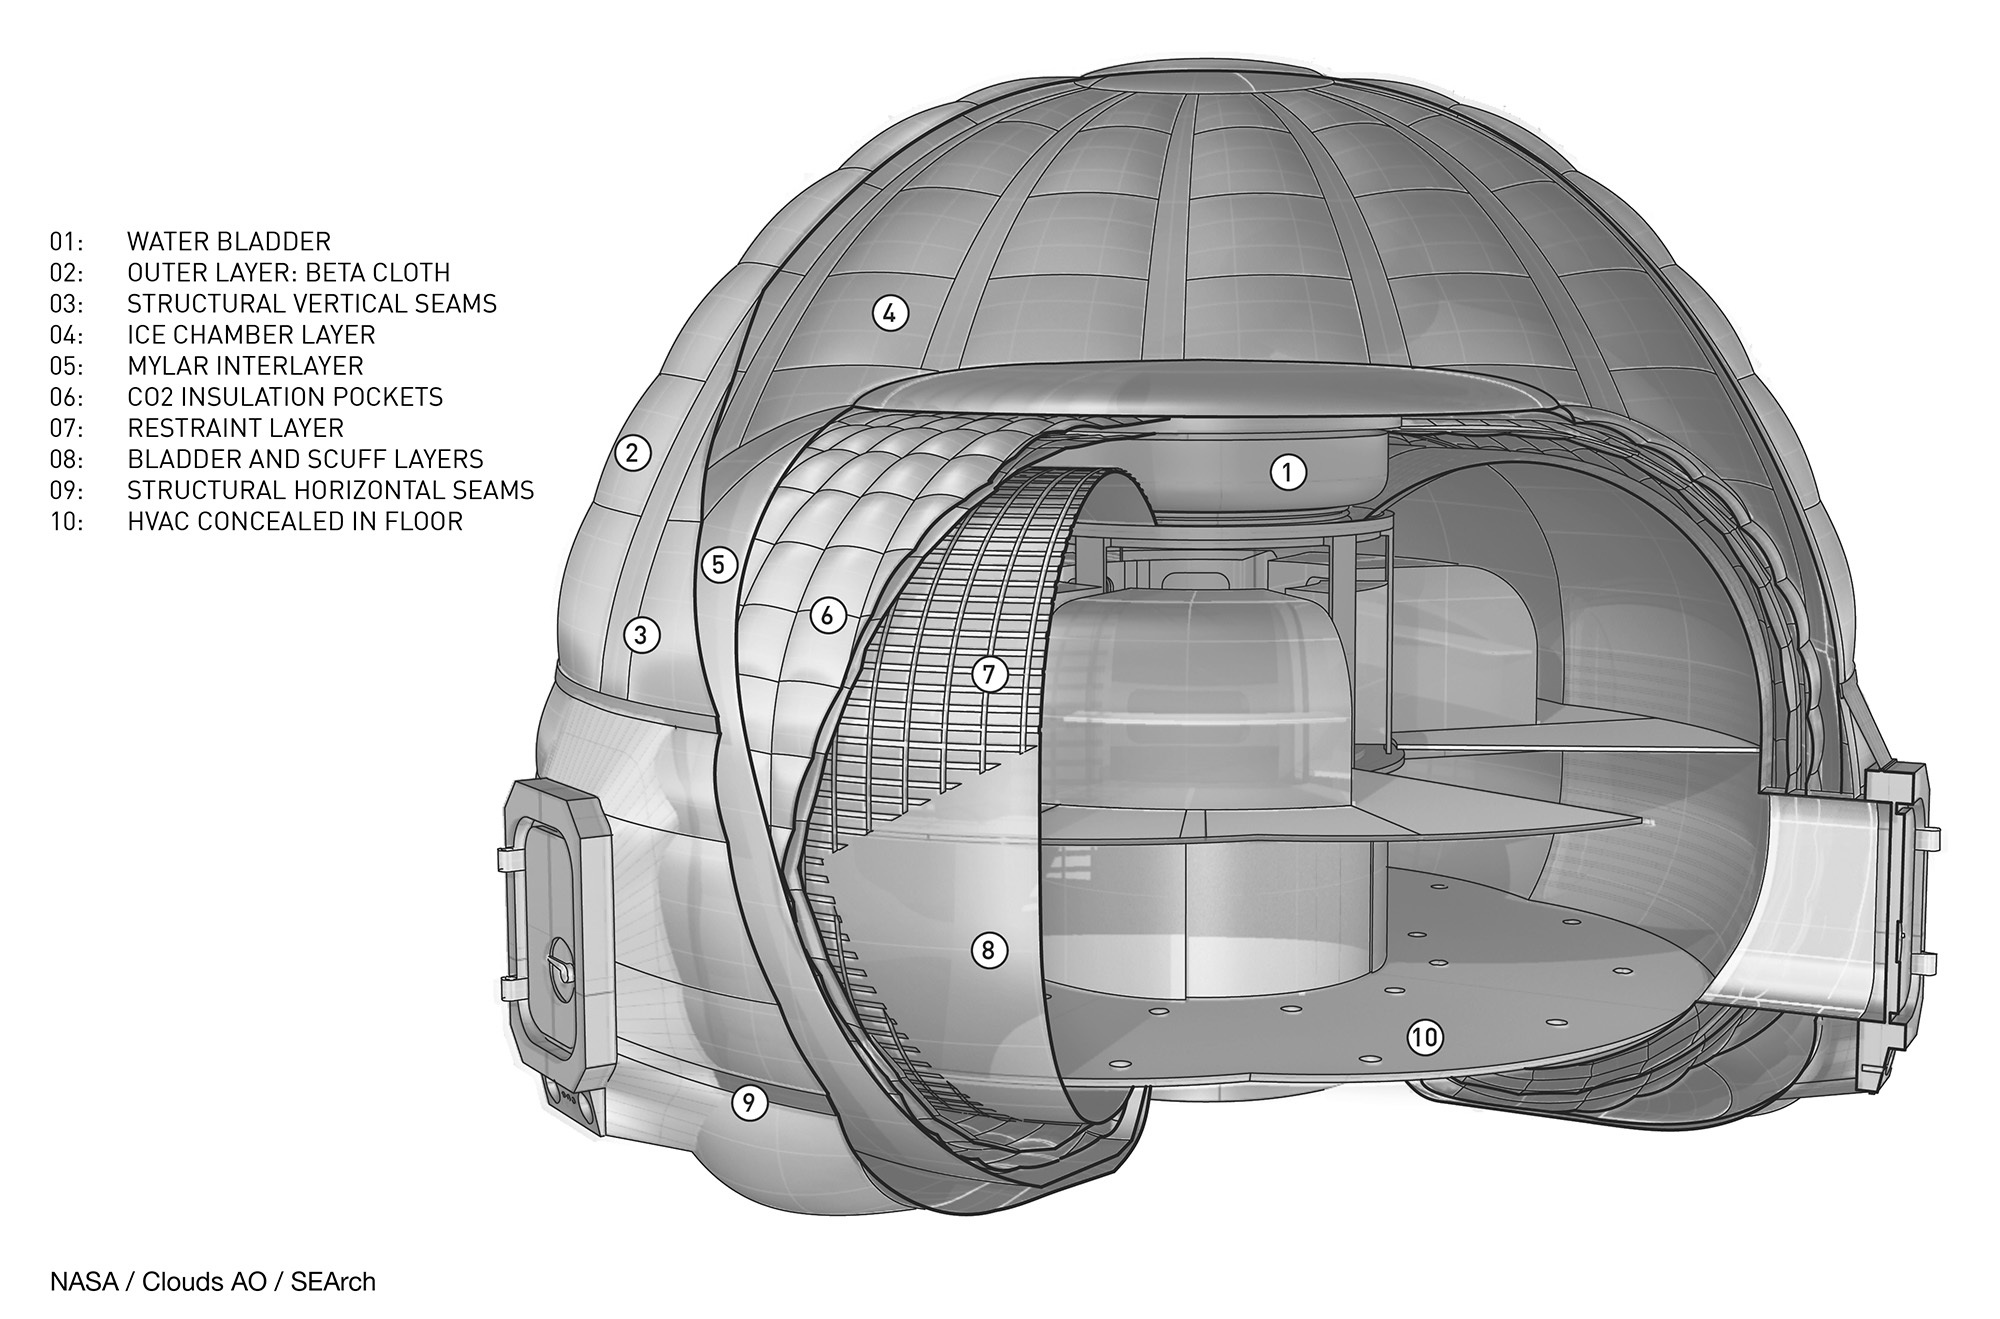 A cutaway of the interior of the Mars Ice Home concept. - Image Credit: NASA Langley/Clouds AO/SEArch.